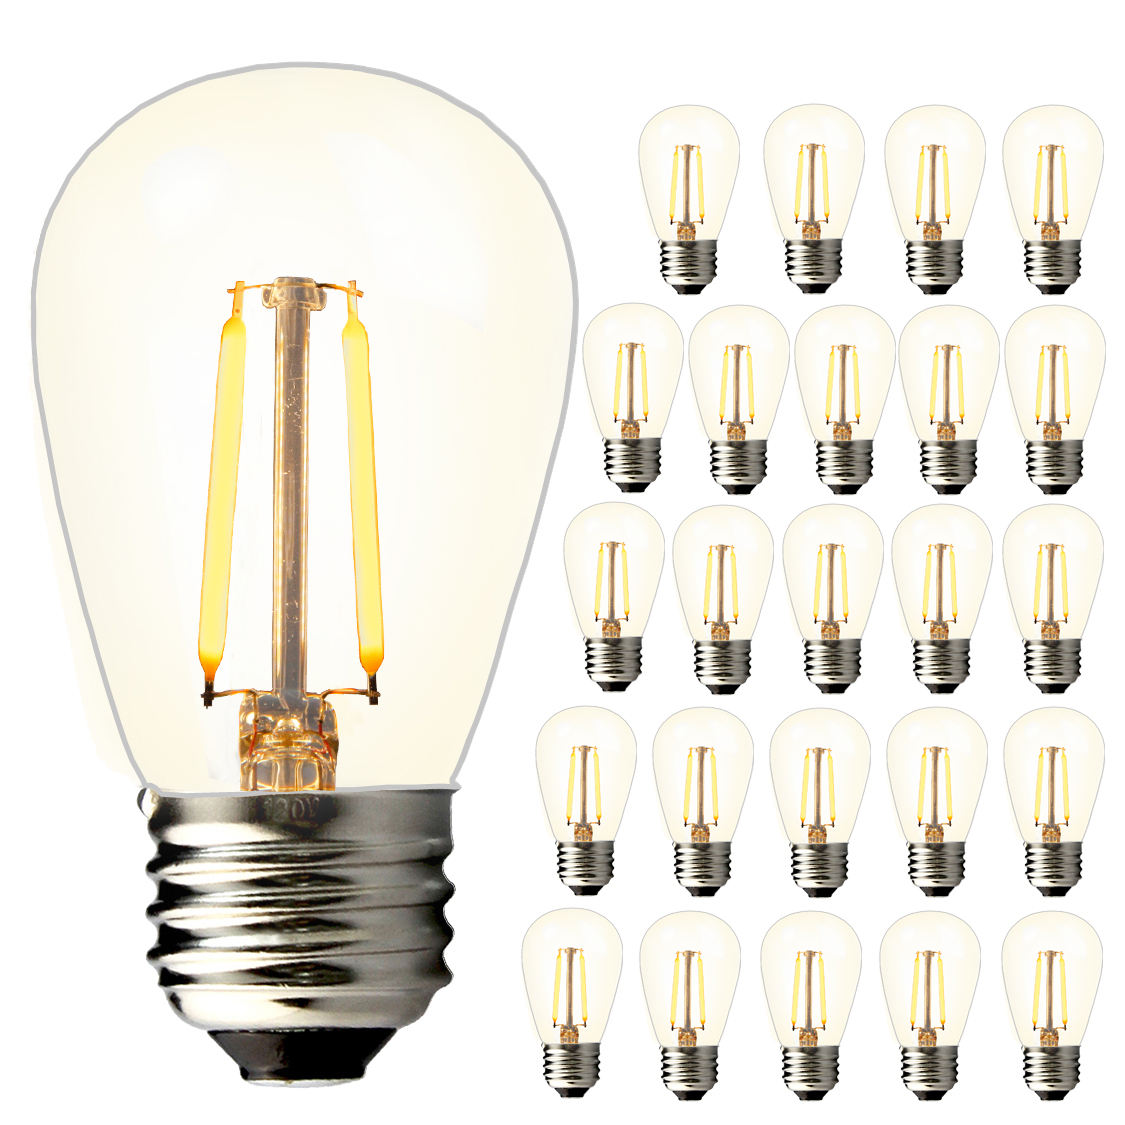 Ul ce rohs certificering 2W gelijk aan 20 watt gloeilamp equivalent E26 E27 6packs dimbare decoratieve led filament lamp